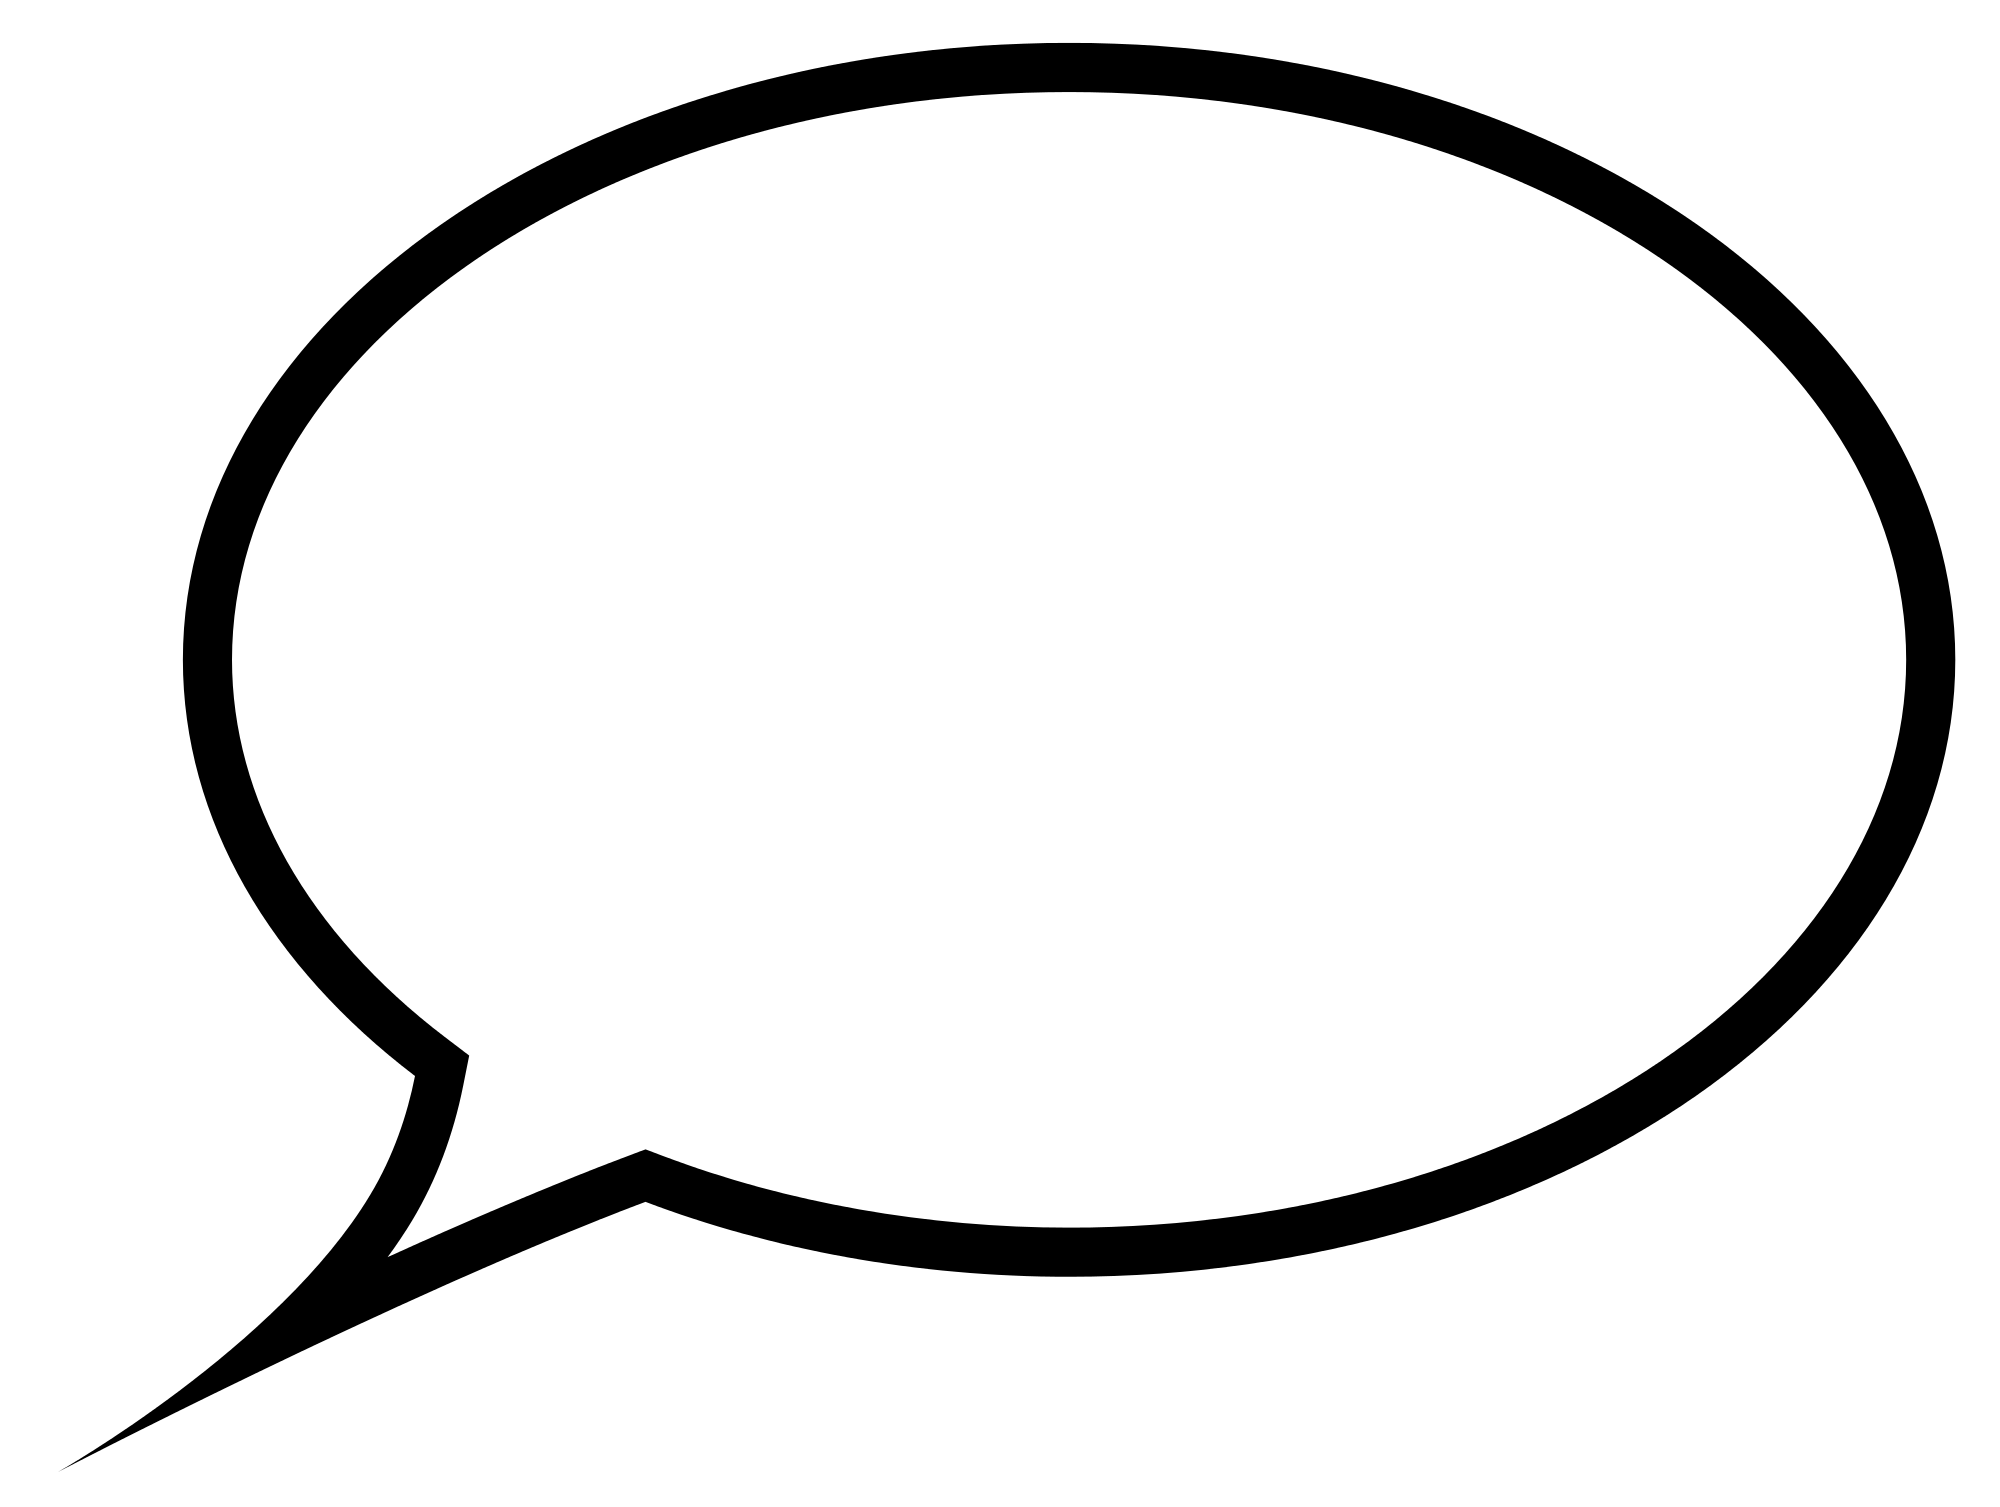 Speech Bubble transparent PNG - StickPNG